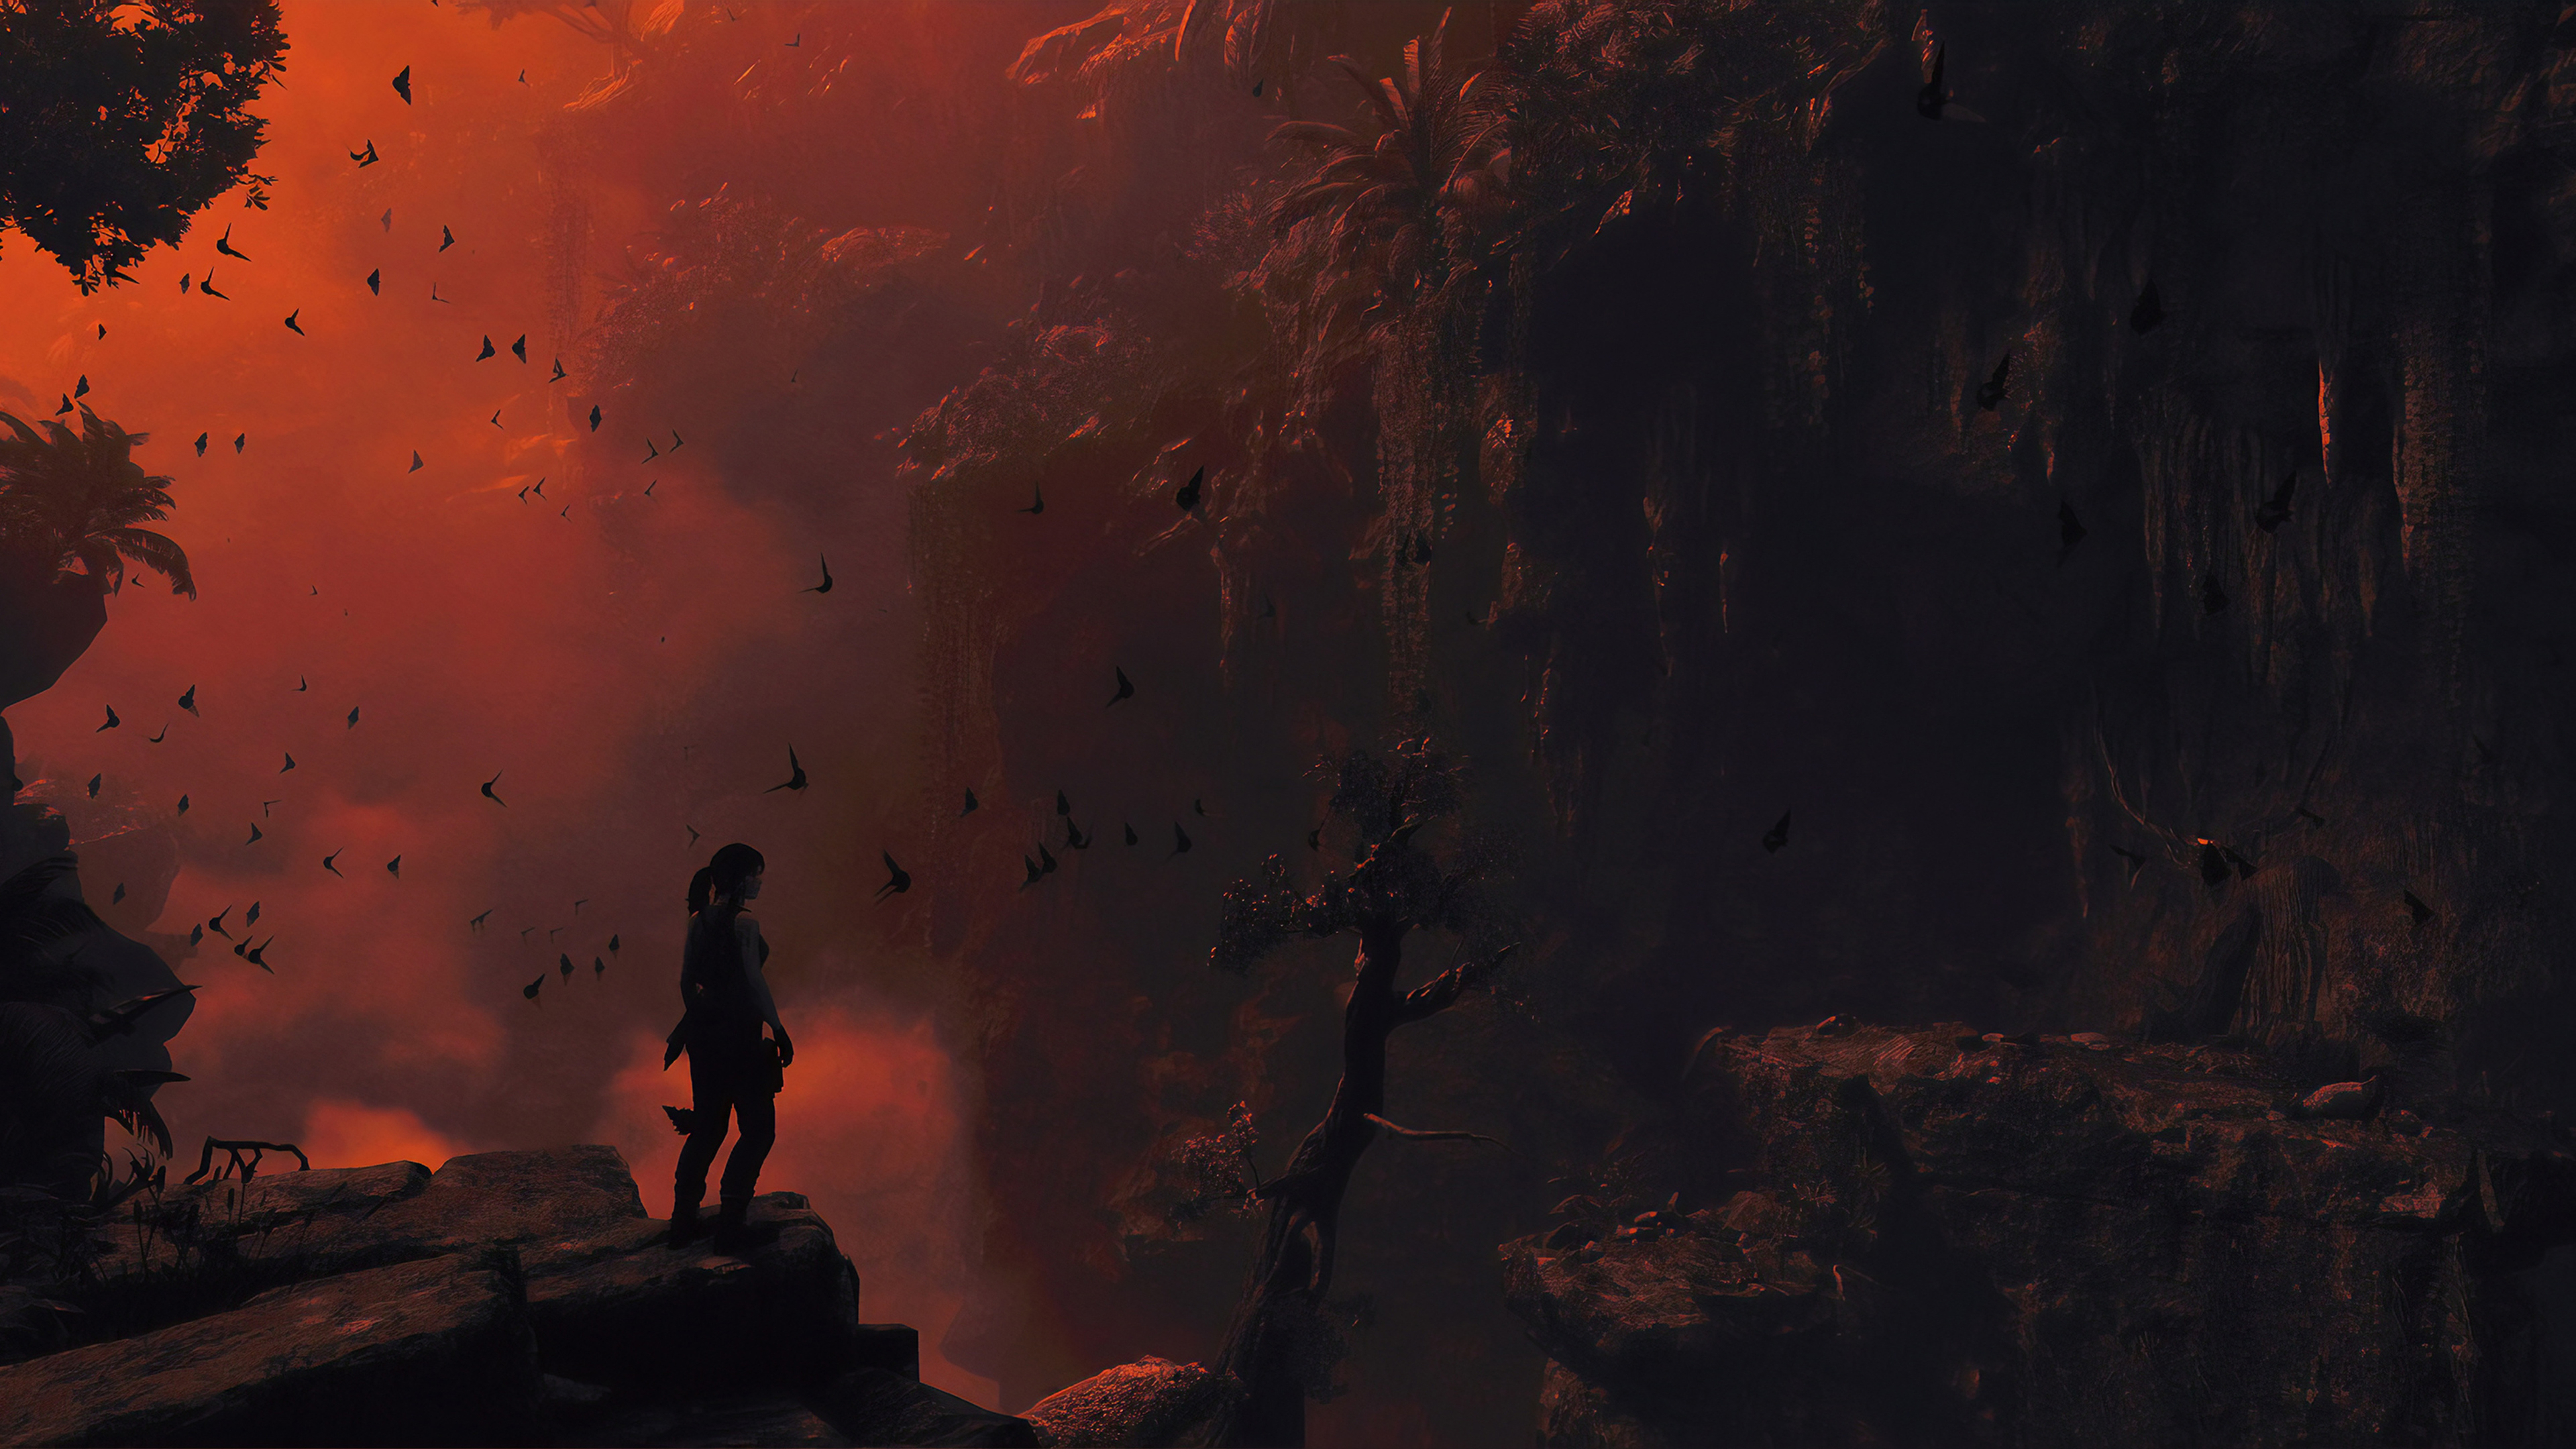 apocalypse shadow of the tomb raider 4k 1560534896 - Apocalypse Shadow Of The Tomb Raider 4k - tomb raider wallpapers, lara croft wallpapers, hd-wallpapers, games wallpapers, 4k-wallpapers, 2019 games wallpapers